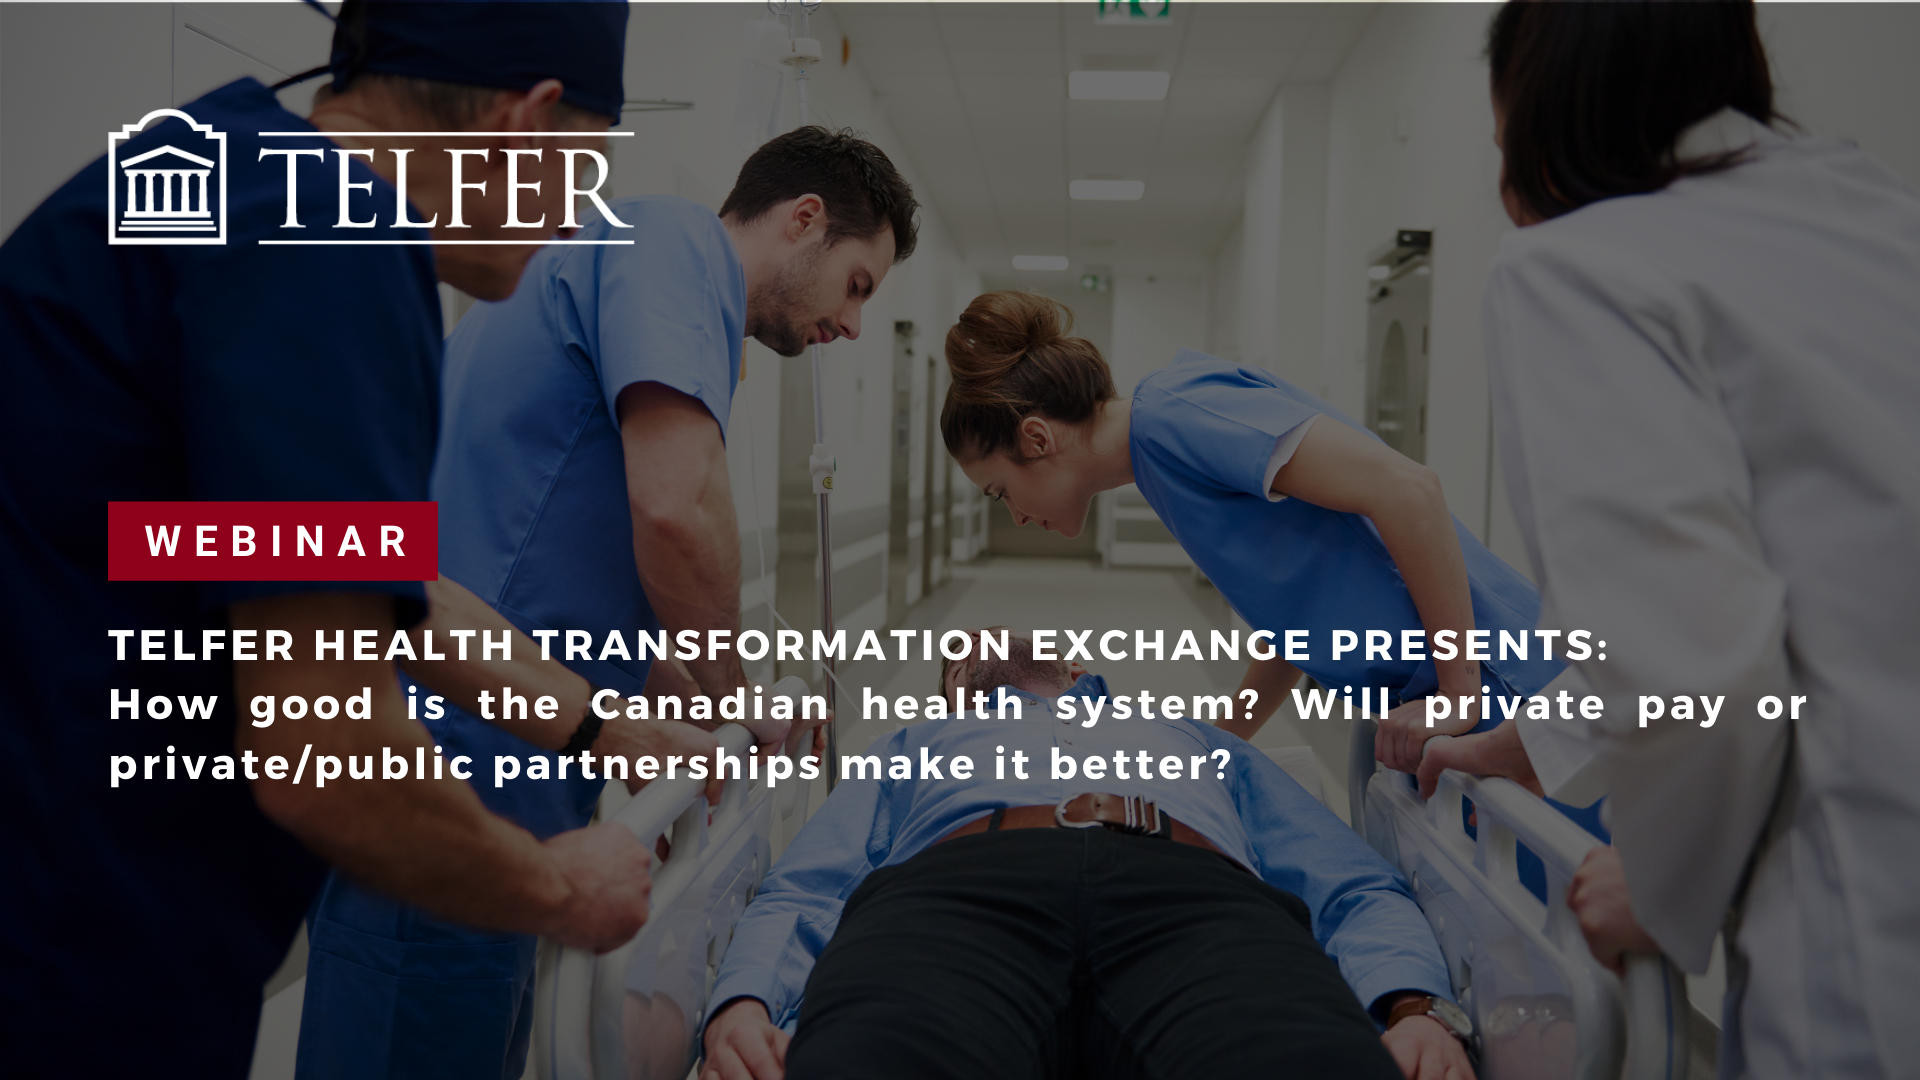 Telfer Health Transformation Exchange - How good is the Canadian health system? Will private pay or private/public partnerships make it better?